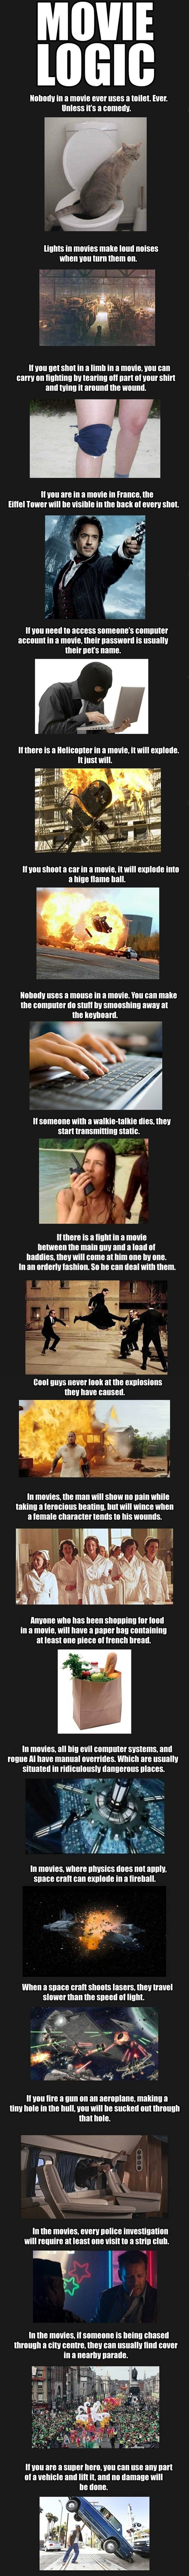 funny movie logic